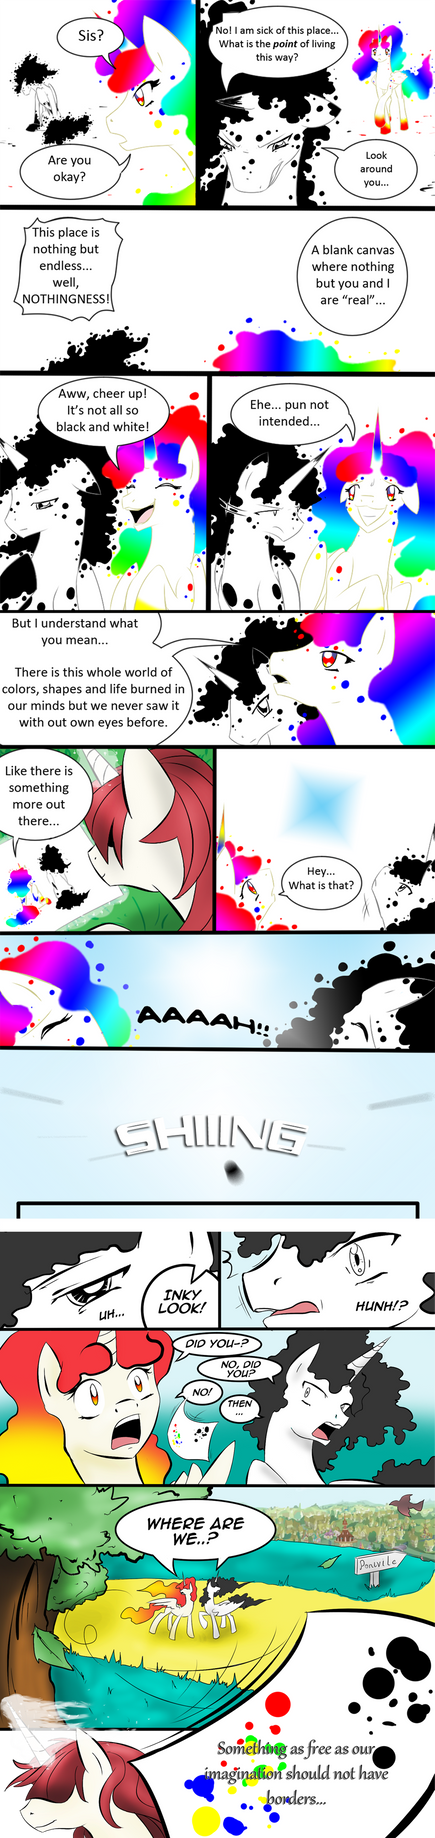 Ask Inky and Palette intro comic by Fly-Sky-High